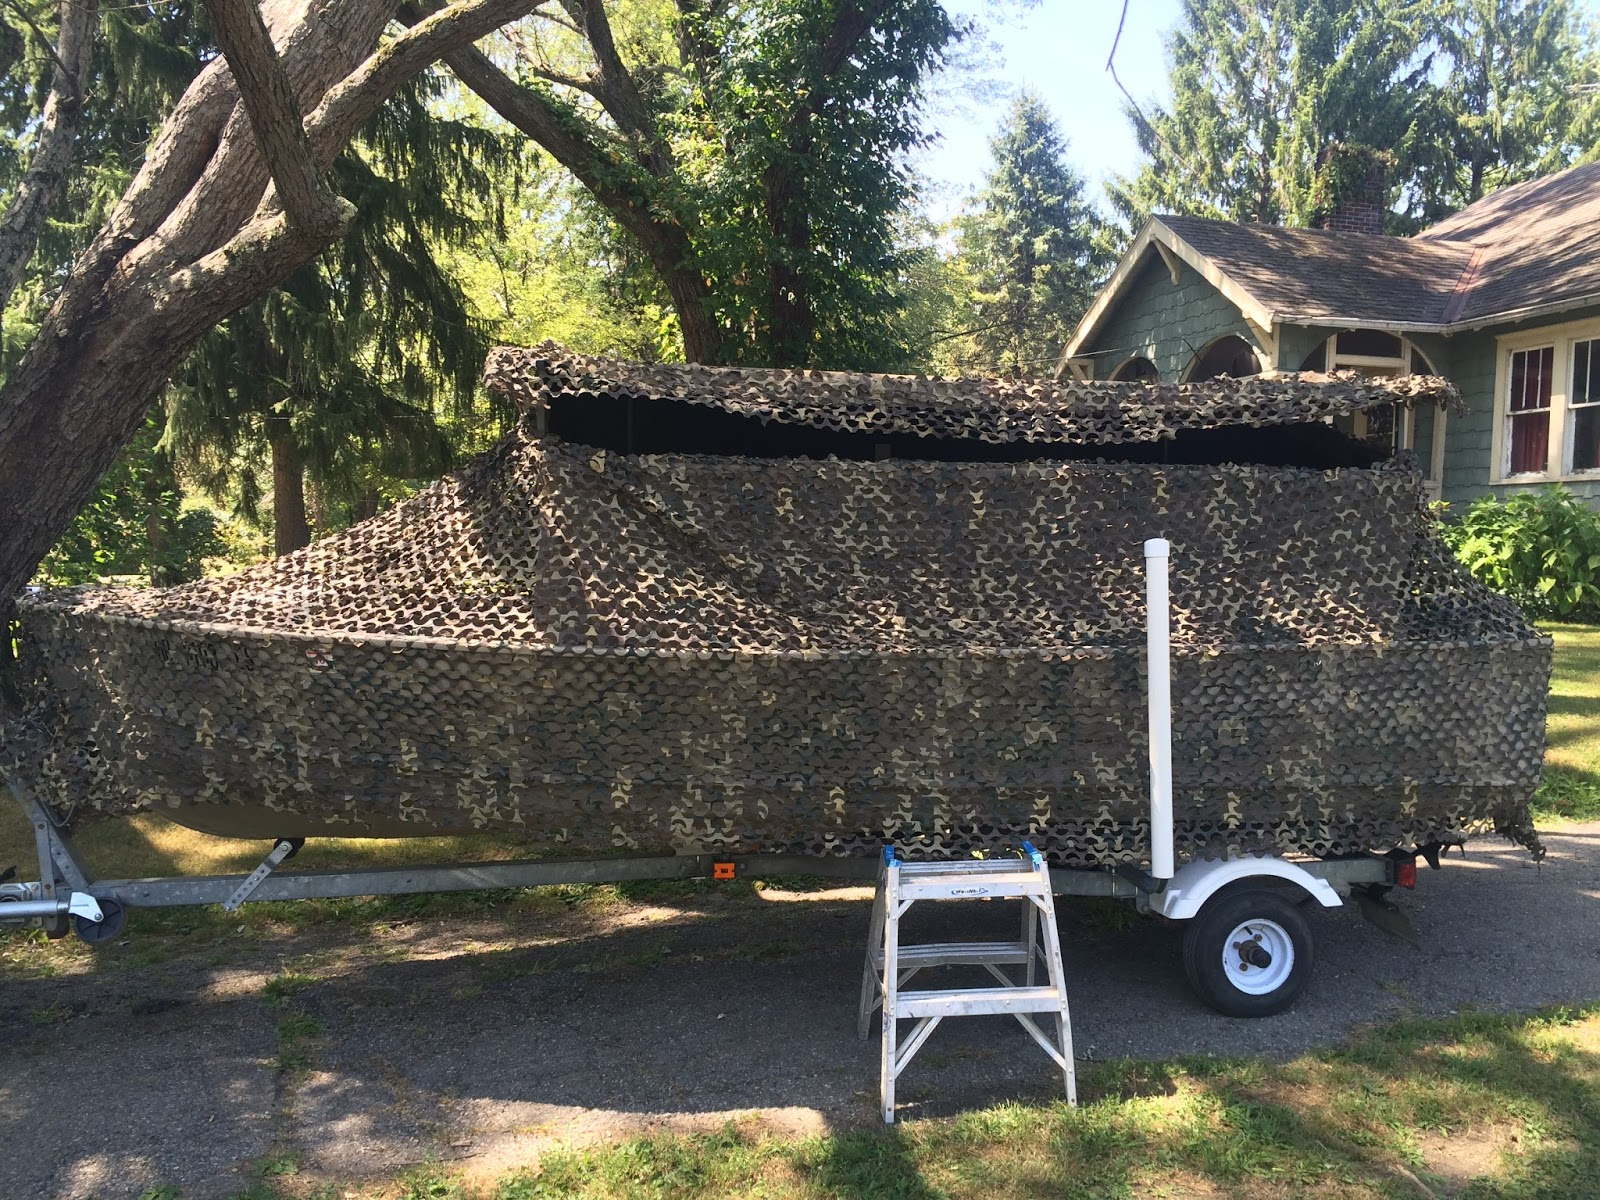 330 Waterfowl Banded Axe Boat Blind Review